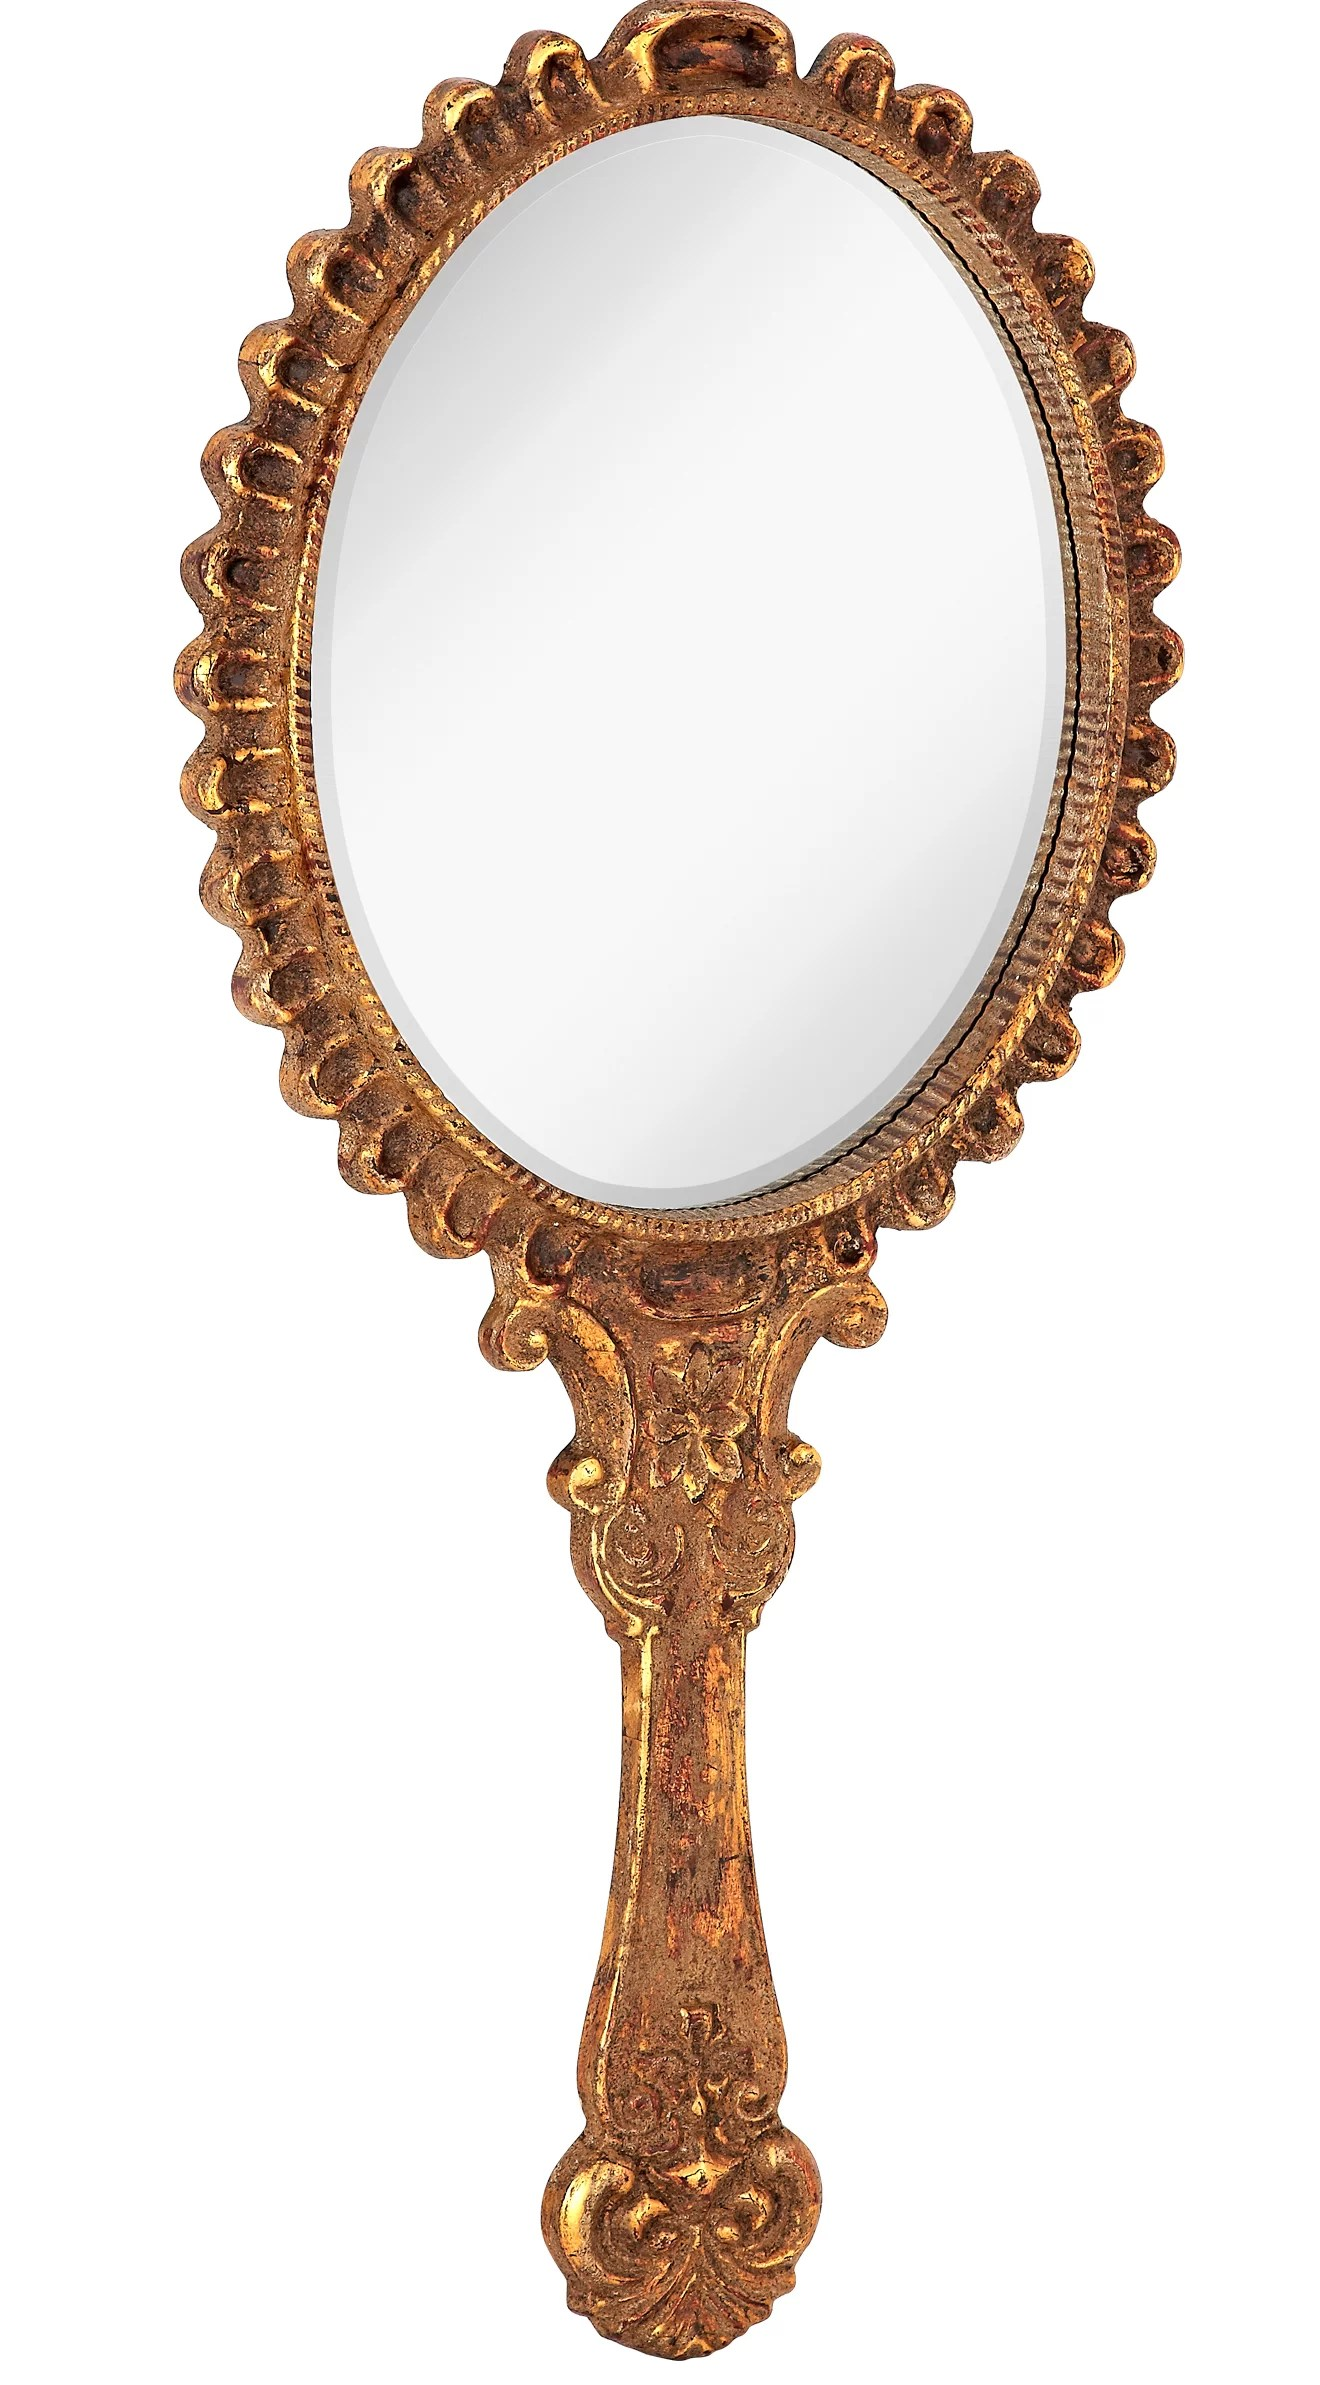 Sun Shaped Mirrors Antique Gold With Rottenstone Hand Mirror Shaped Wall Mirror